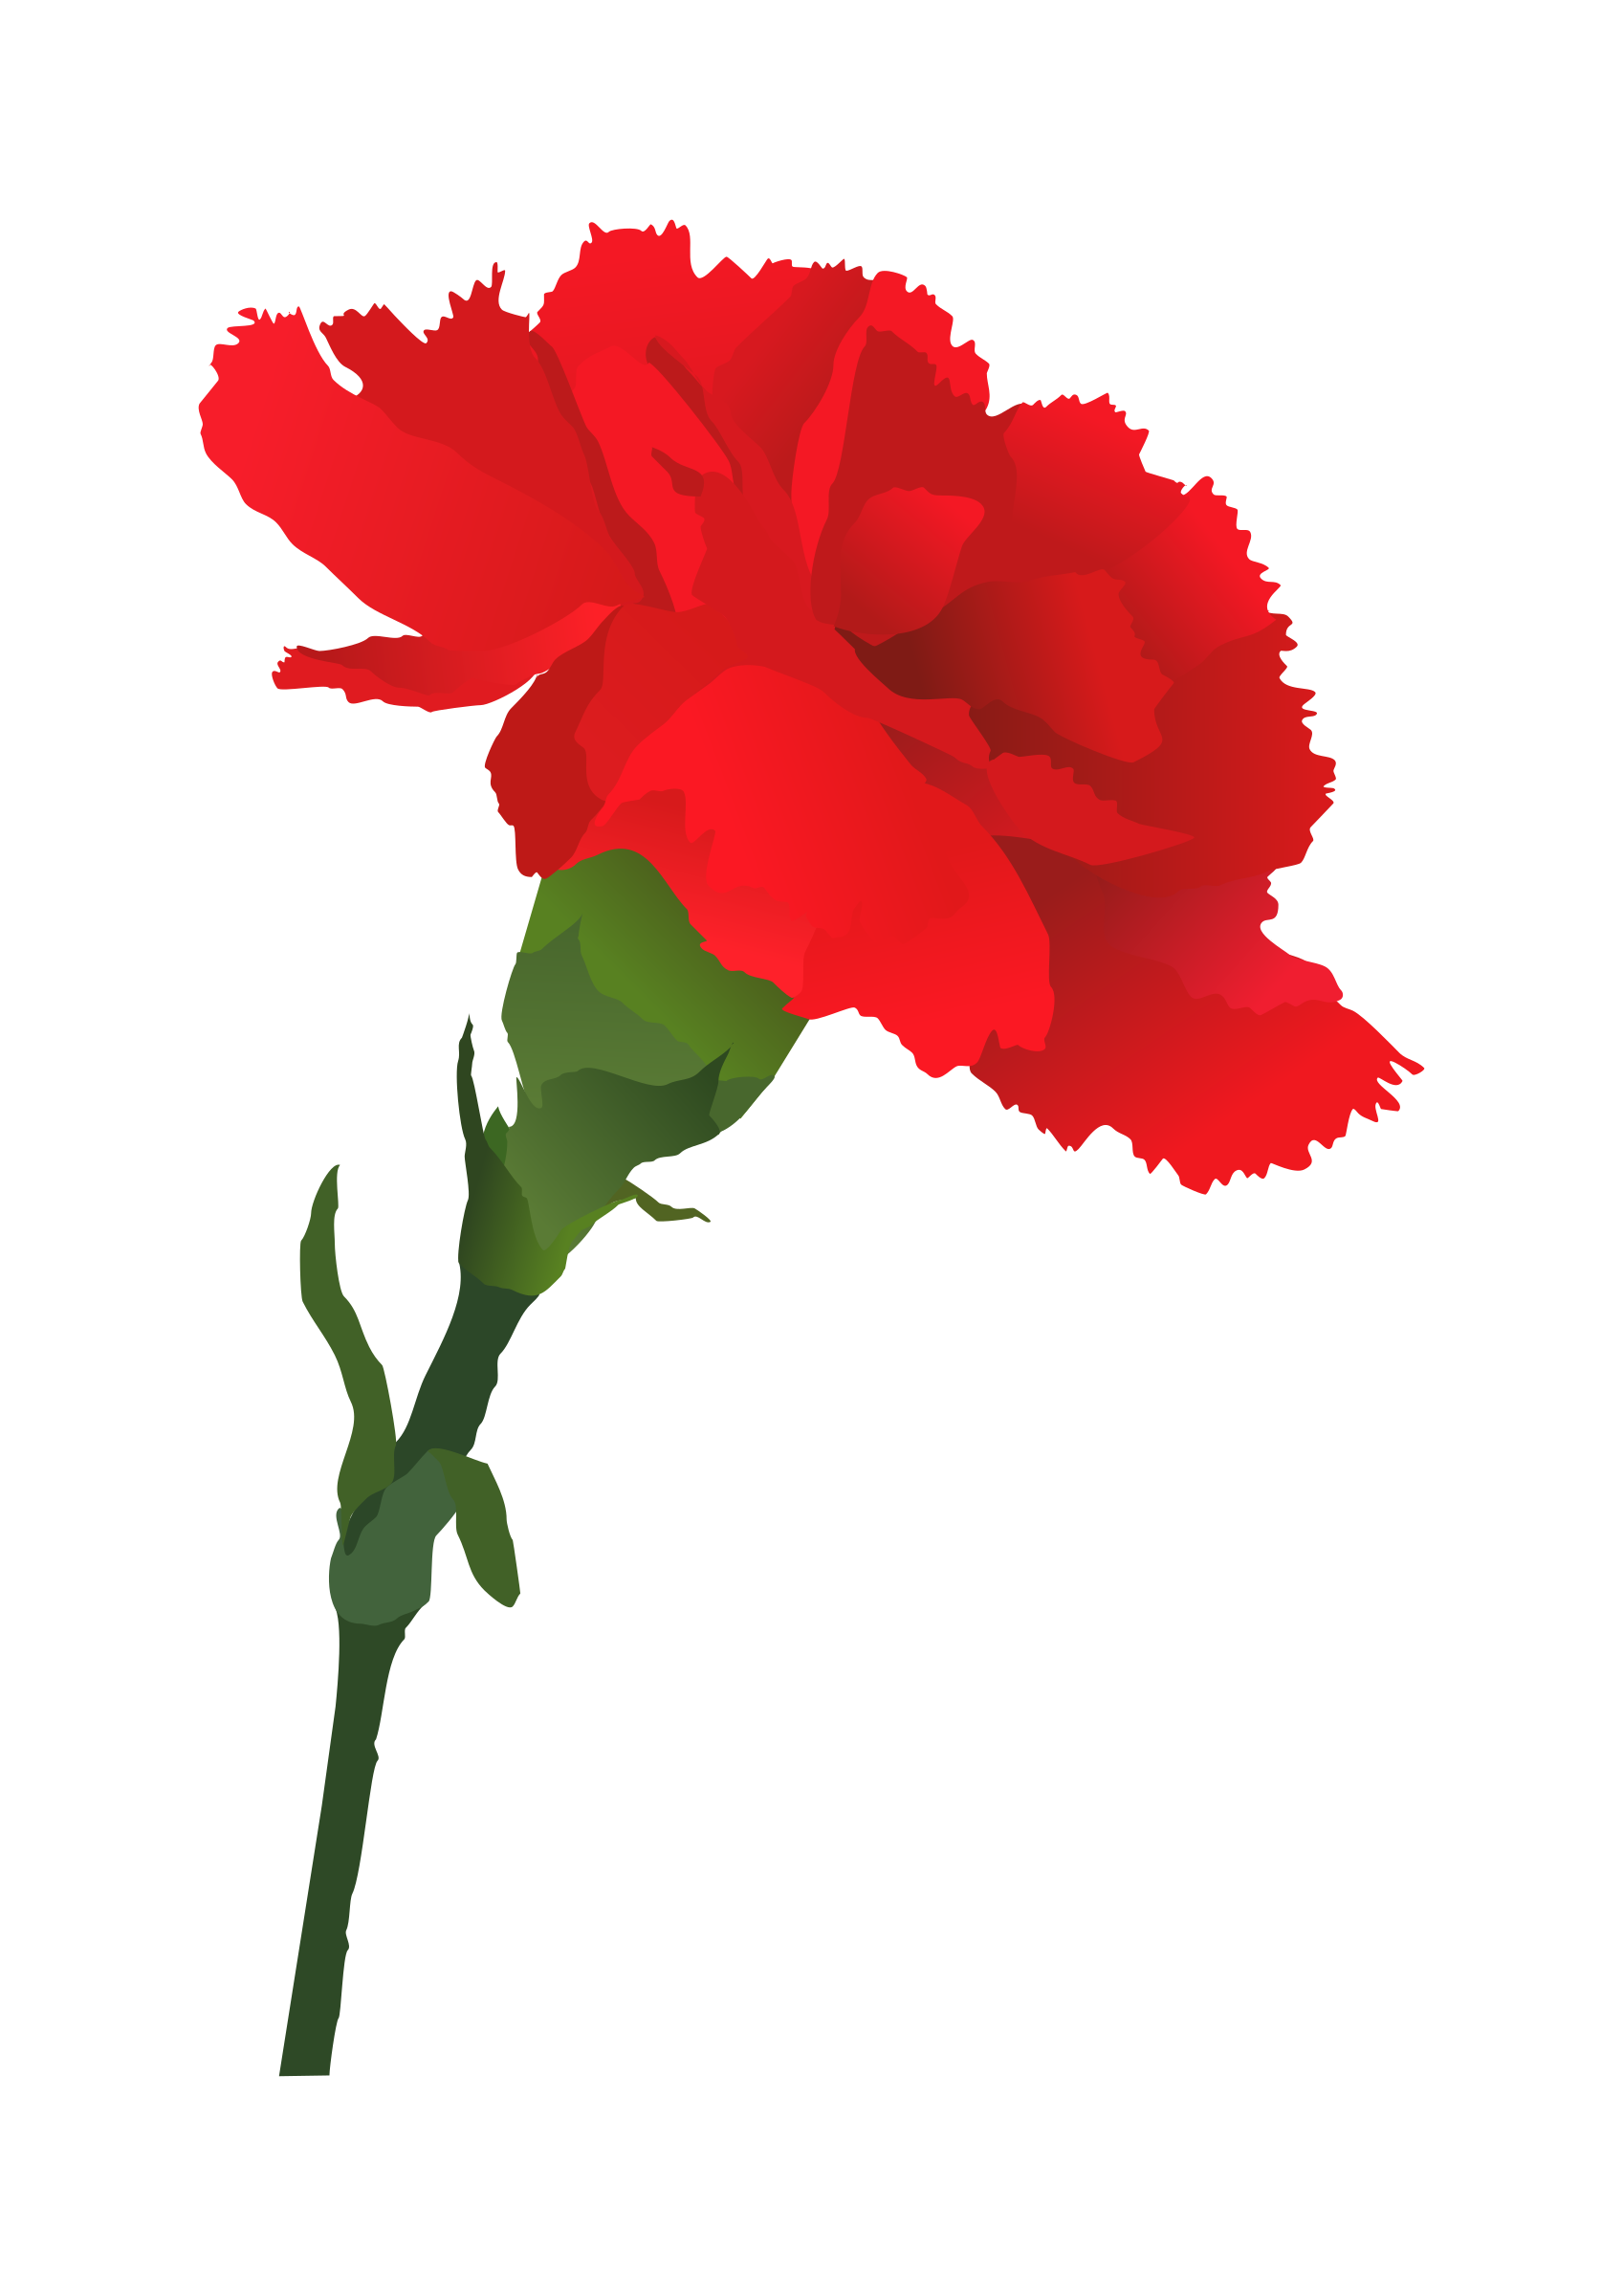 Pink carnation clip art clipart images gallery for free.